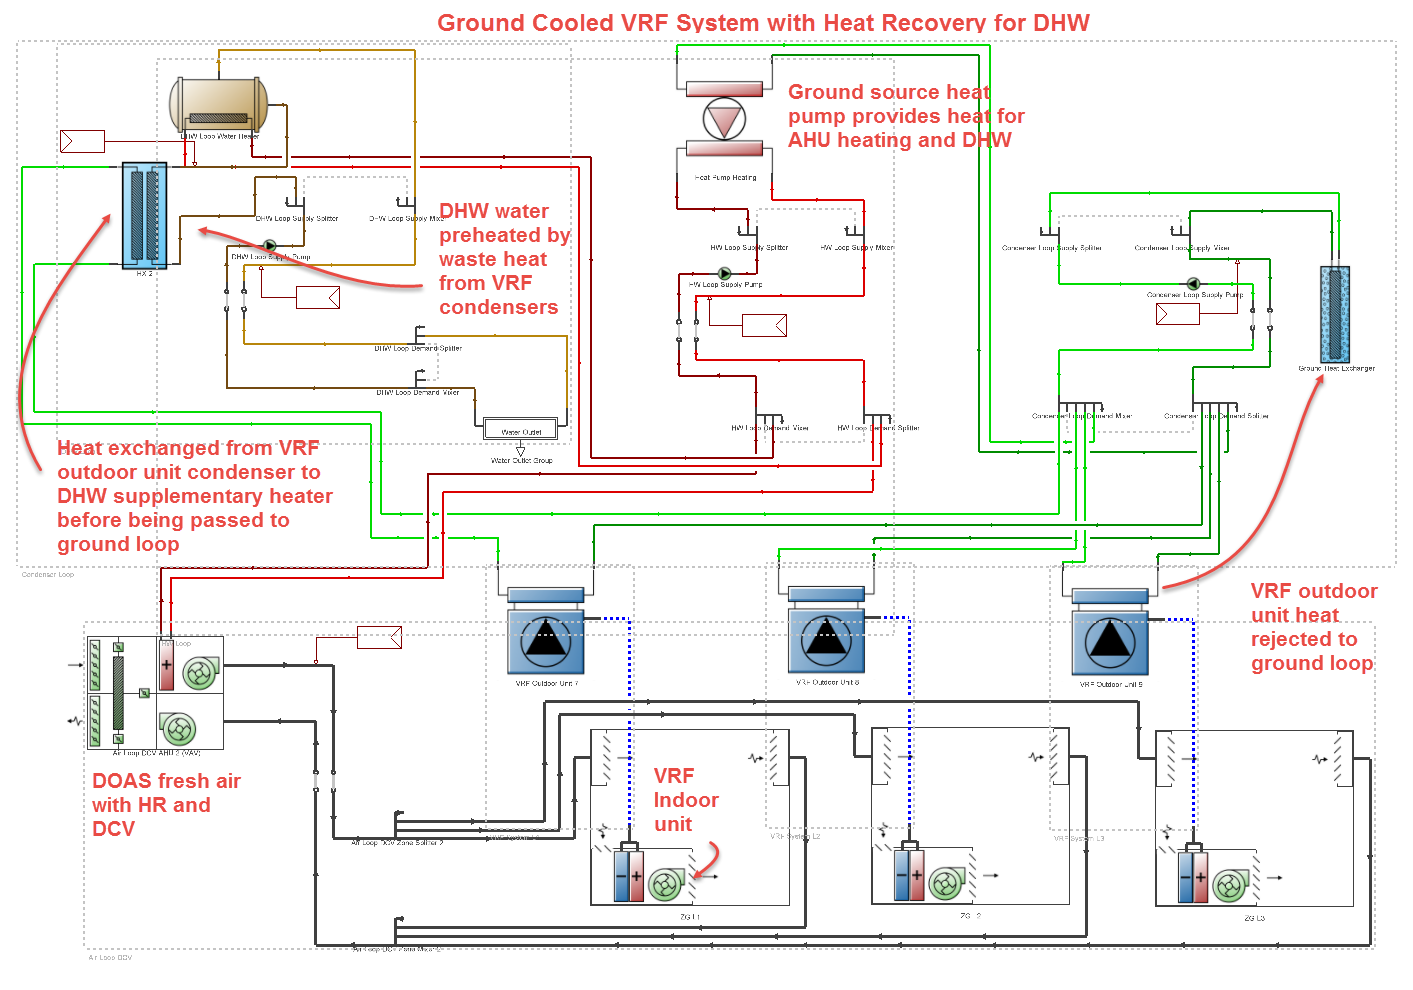 Vrf Outdoor Unit General Tab Piping Layout Around Pump In This Case The Outlet Of Water Cooled Condenser Is Connected To Demand Side A Loop As Shown Example Hvac Diagram